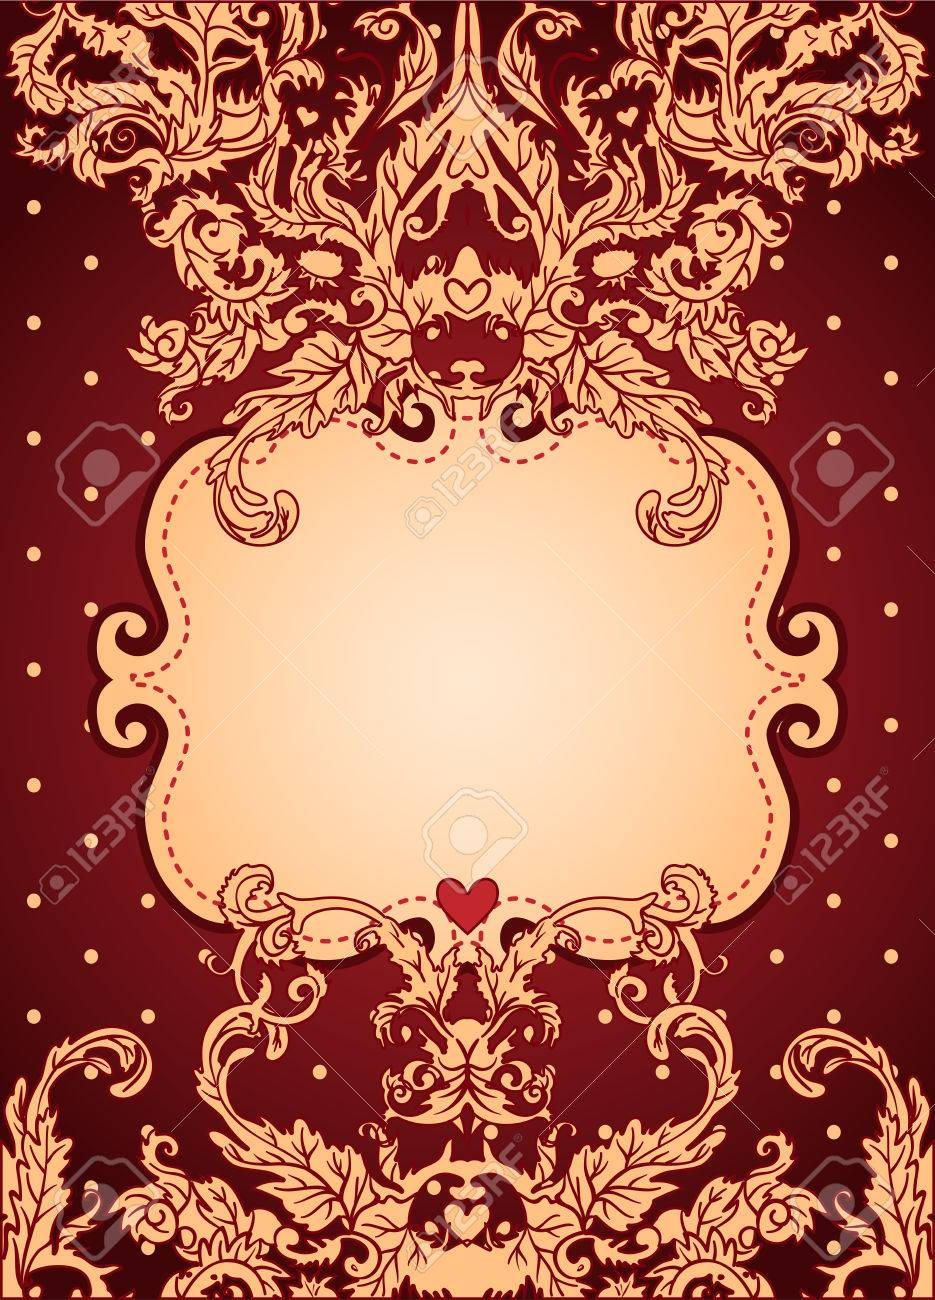 Vintage background ornate baroque pattern vector illustration stock - Vintage Background Ornate Baroque Pattern Vector Illustration Stock Vector 33592483